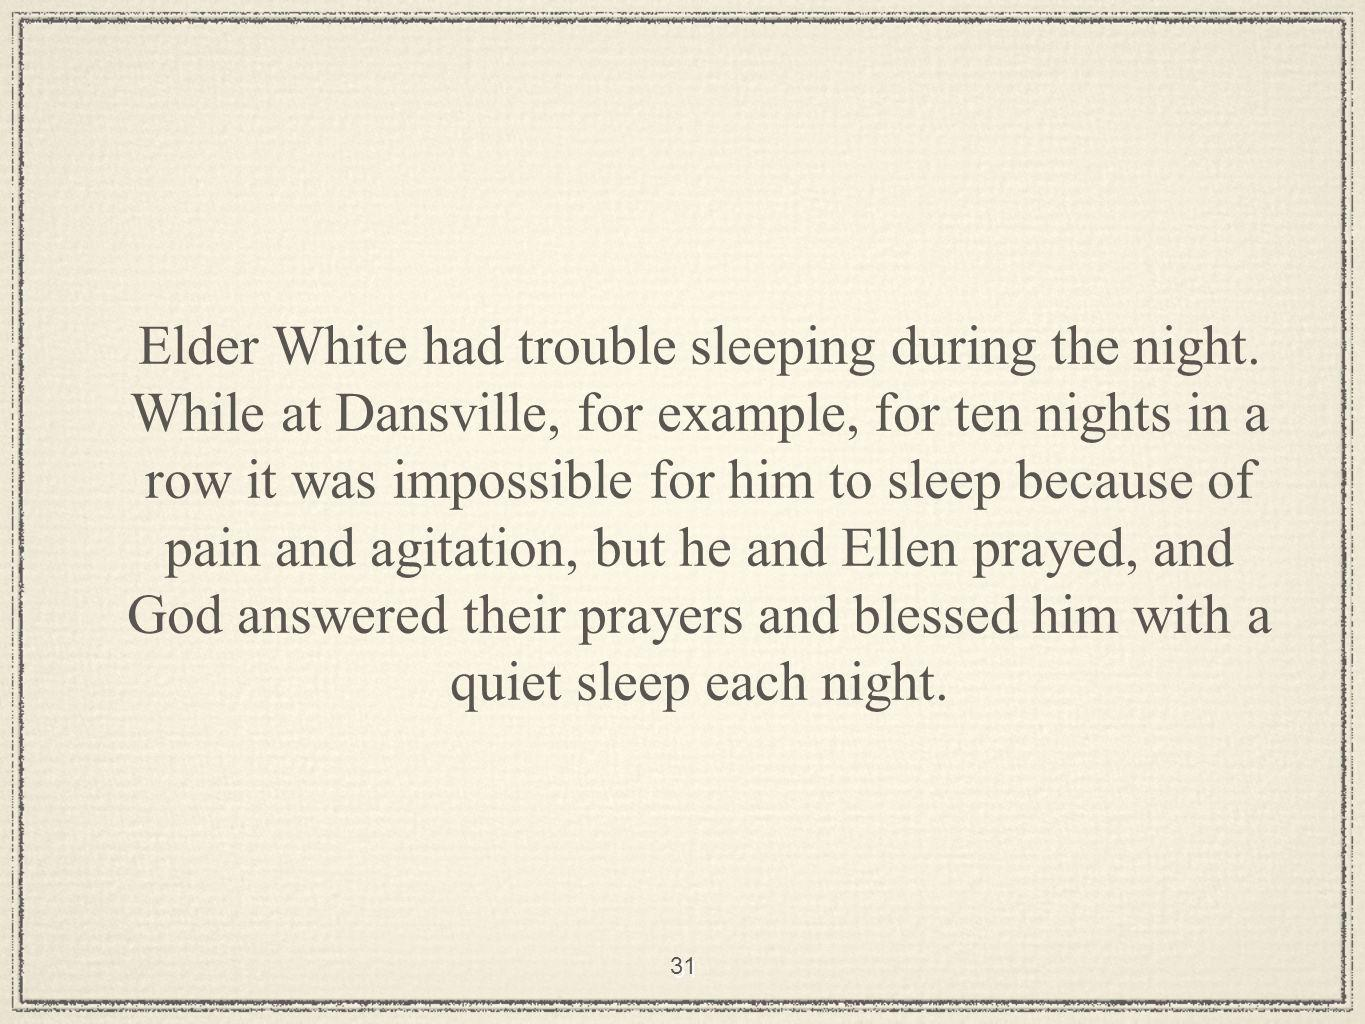 31 Elder White had trouble sleeping during the night.